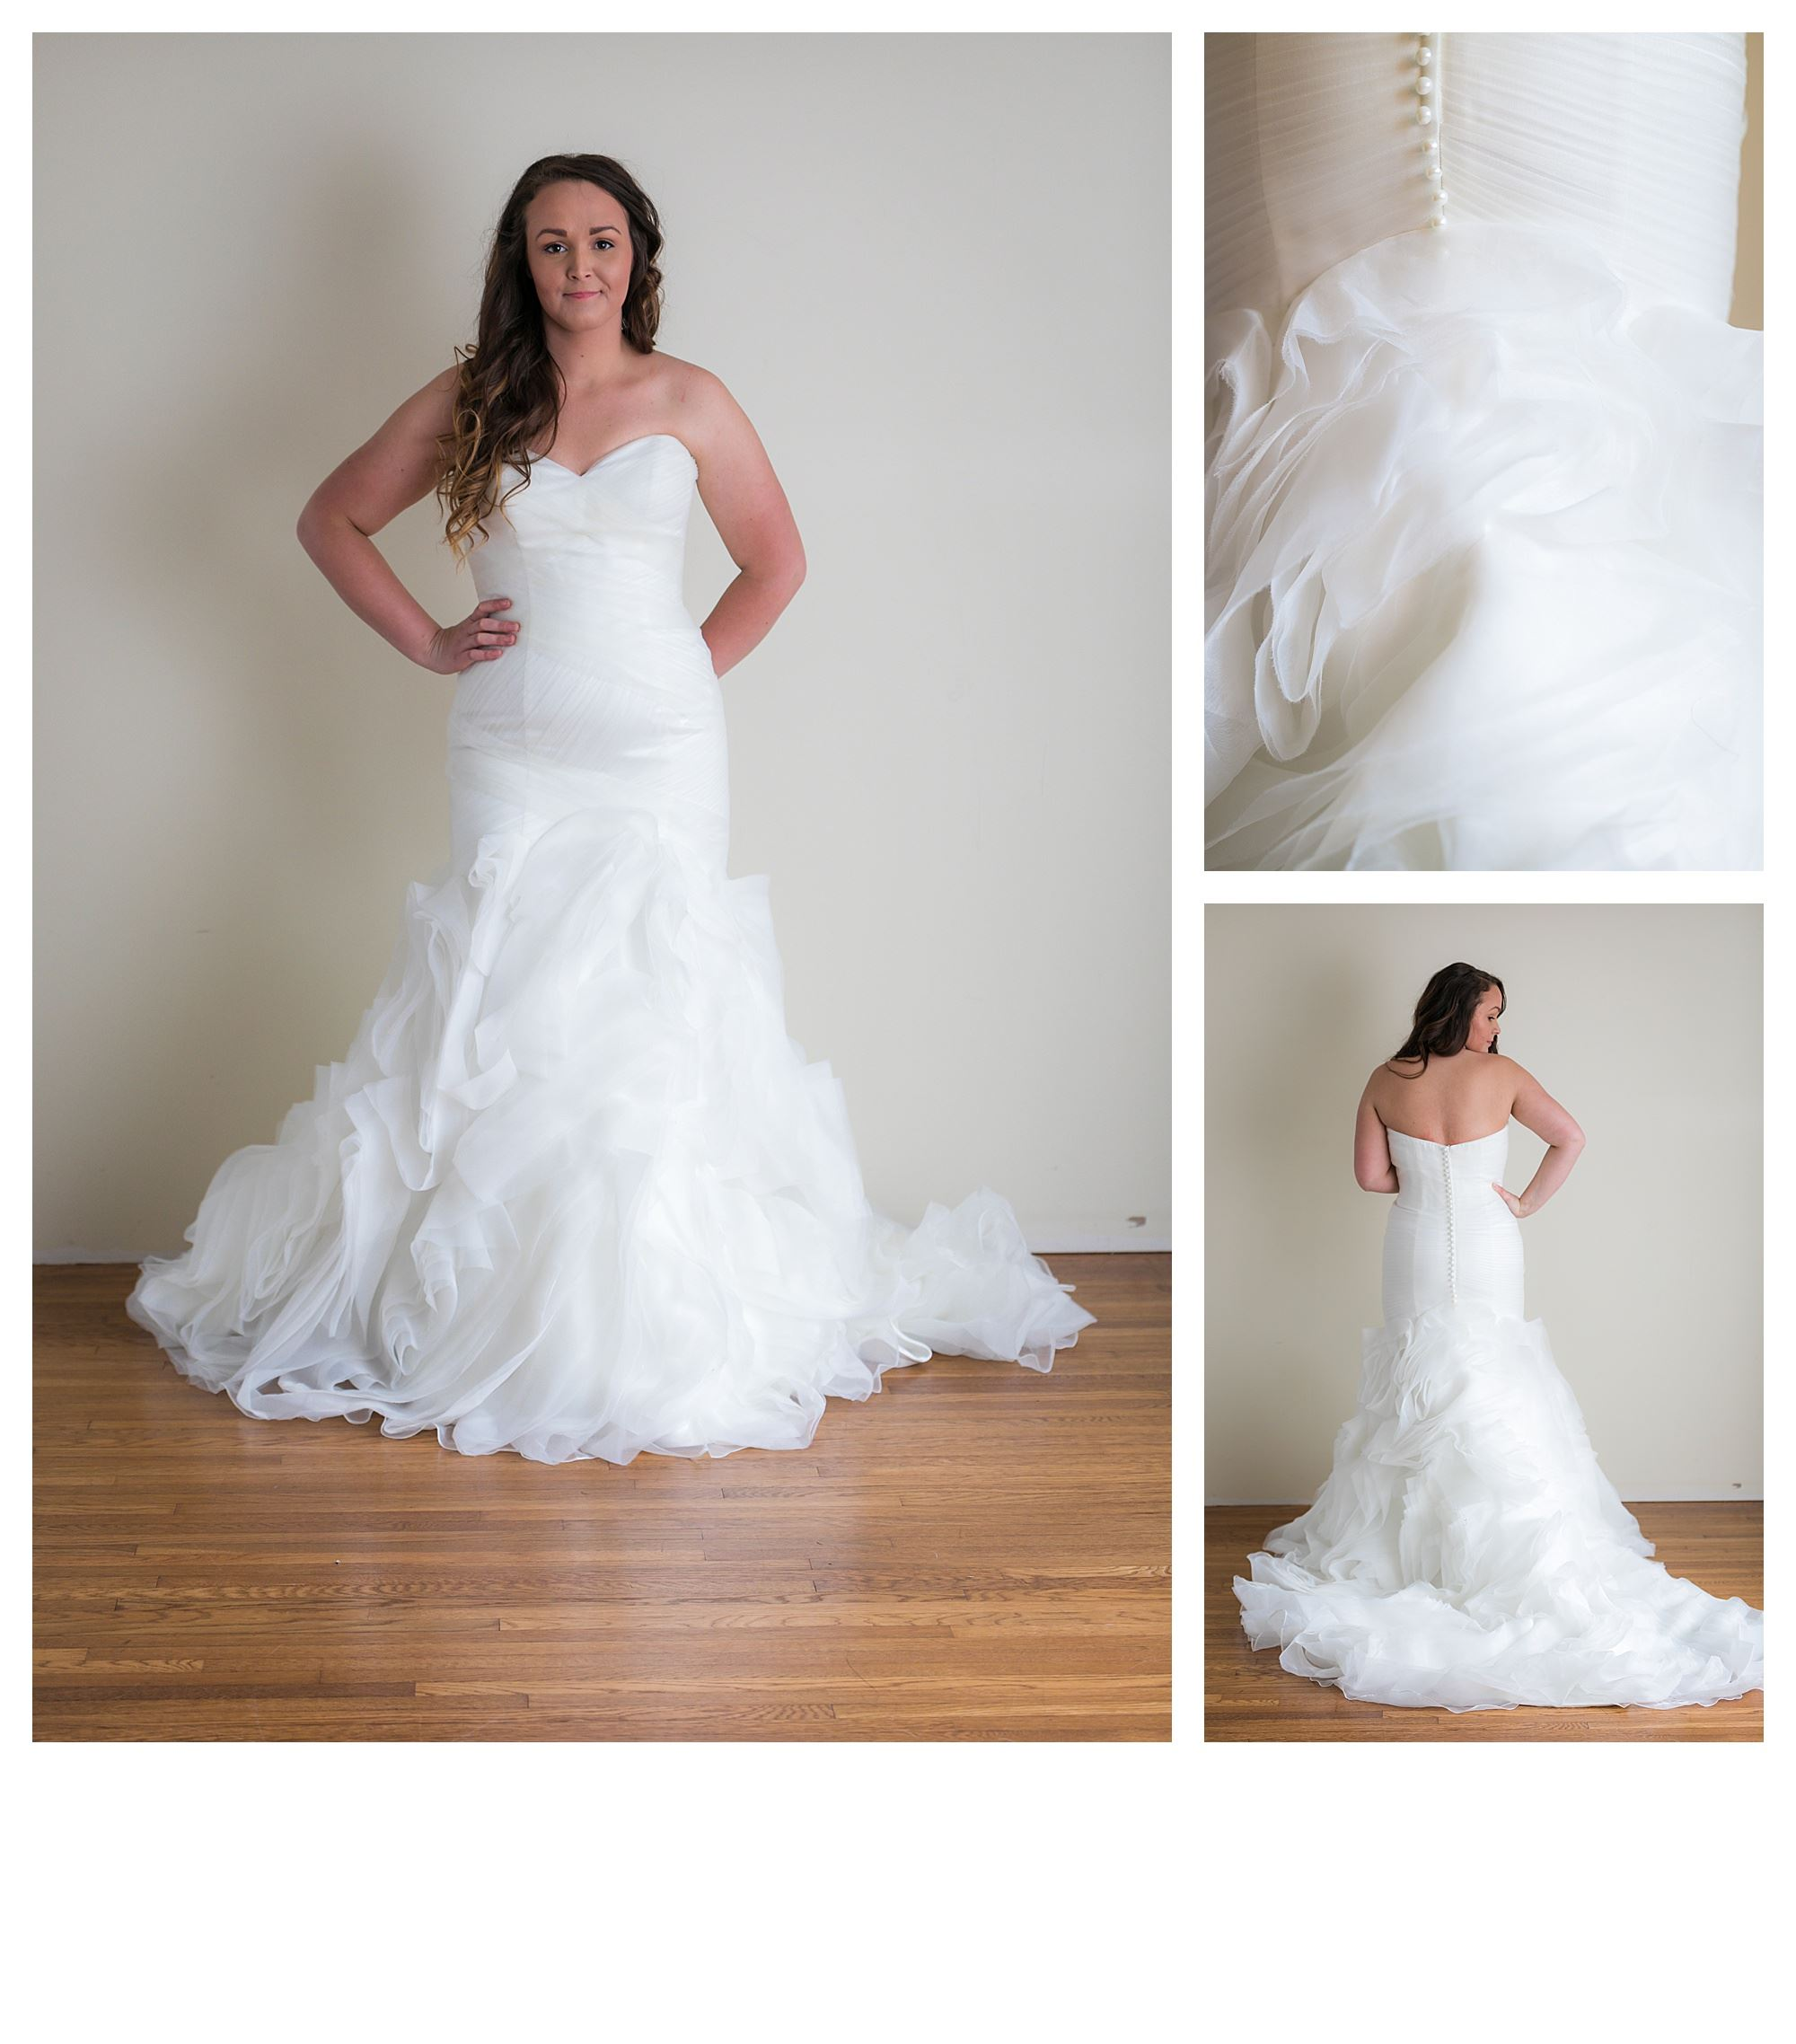 Shelly - Size 12 - Ivory - Originally priced $1499 - Sample box price $999